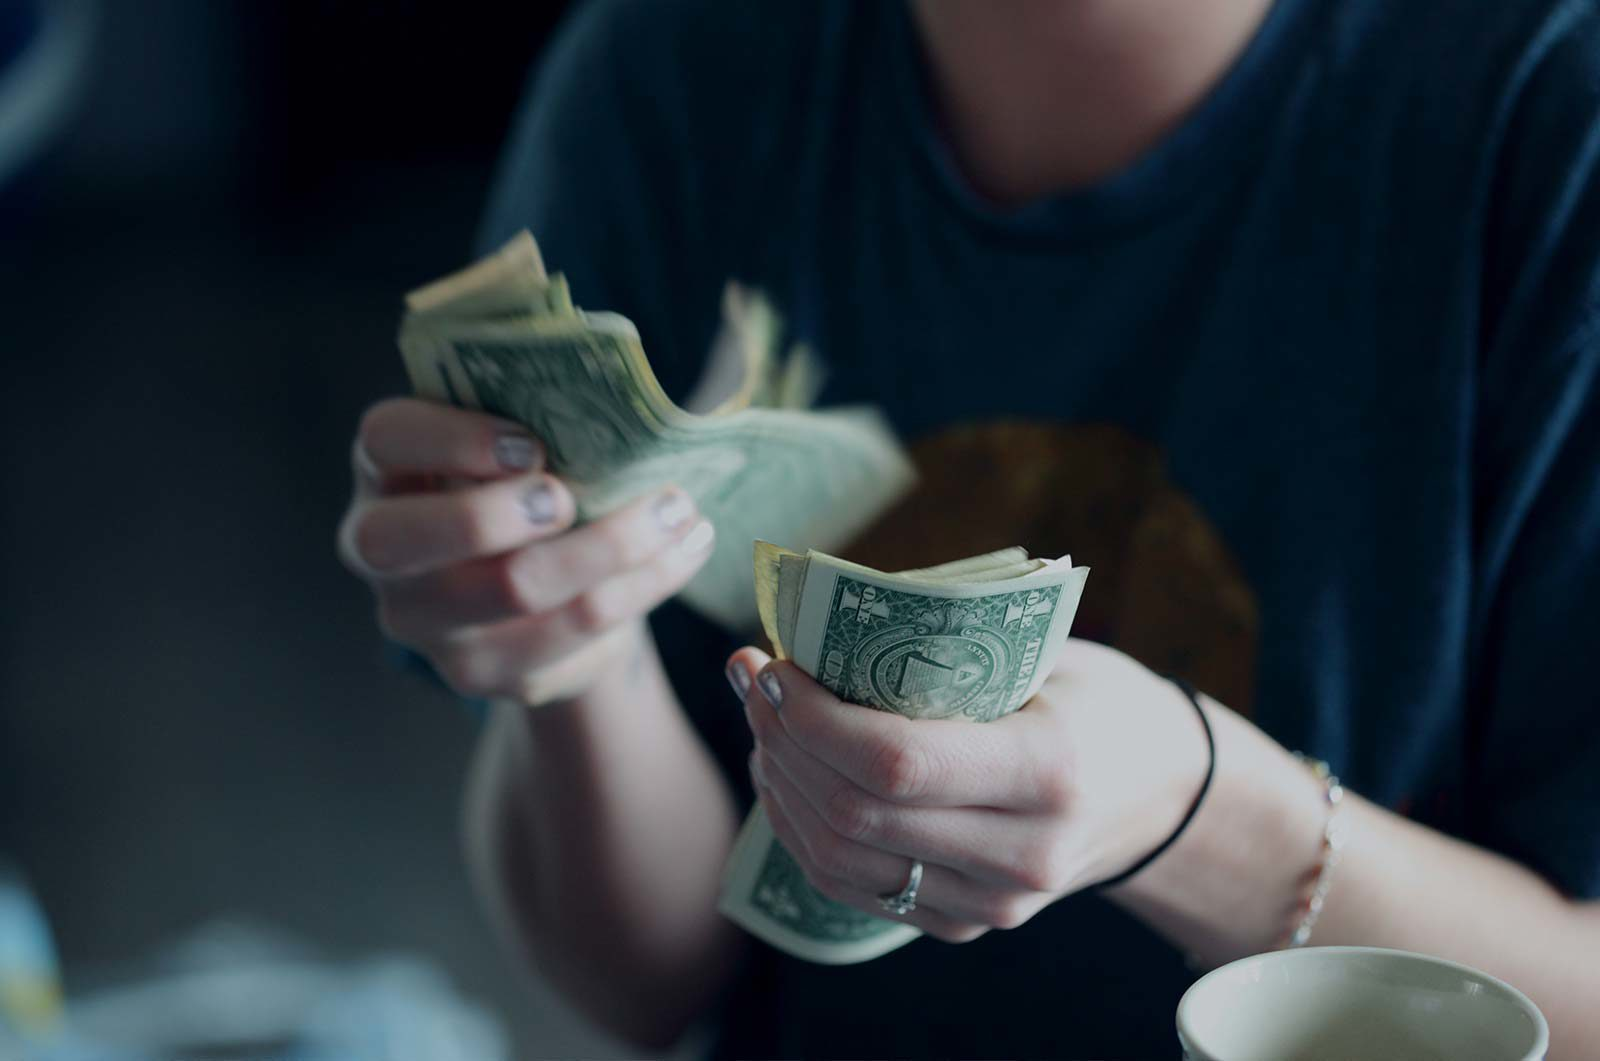 Closeup of person's hand counting American dollar bills.